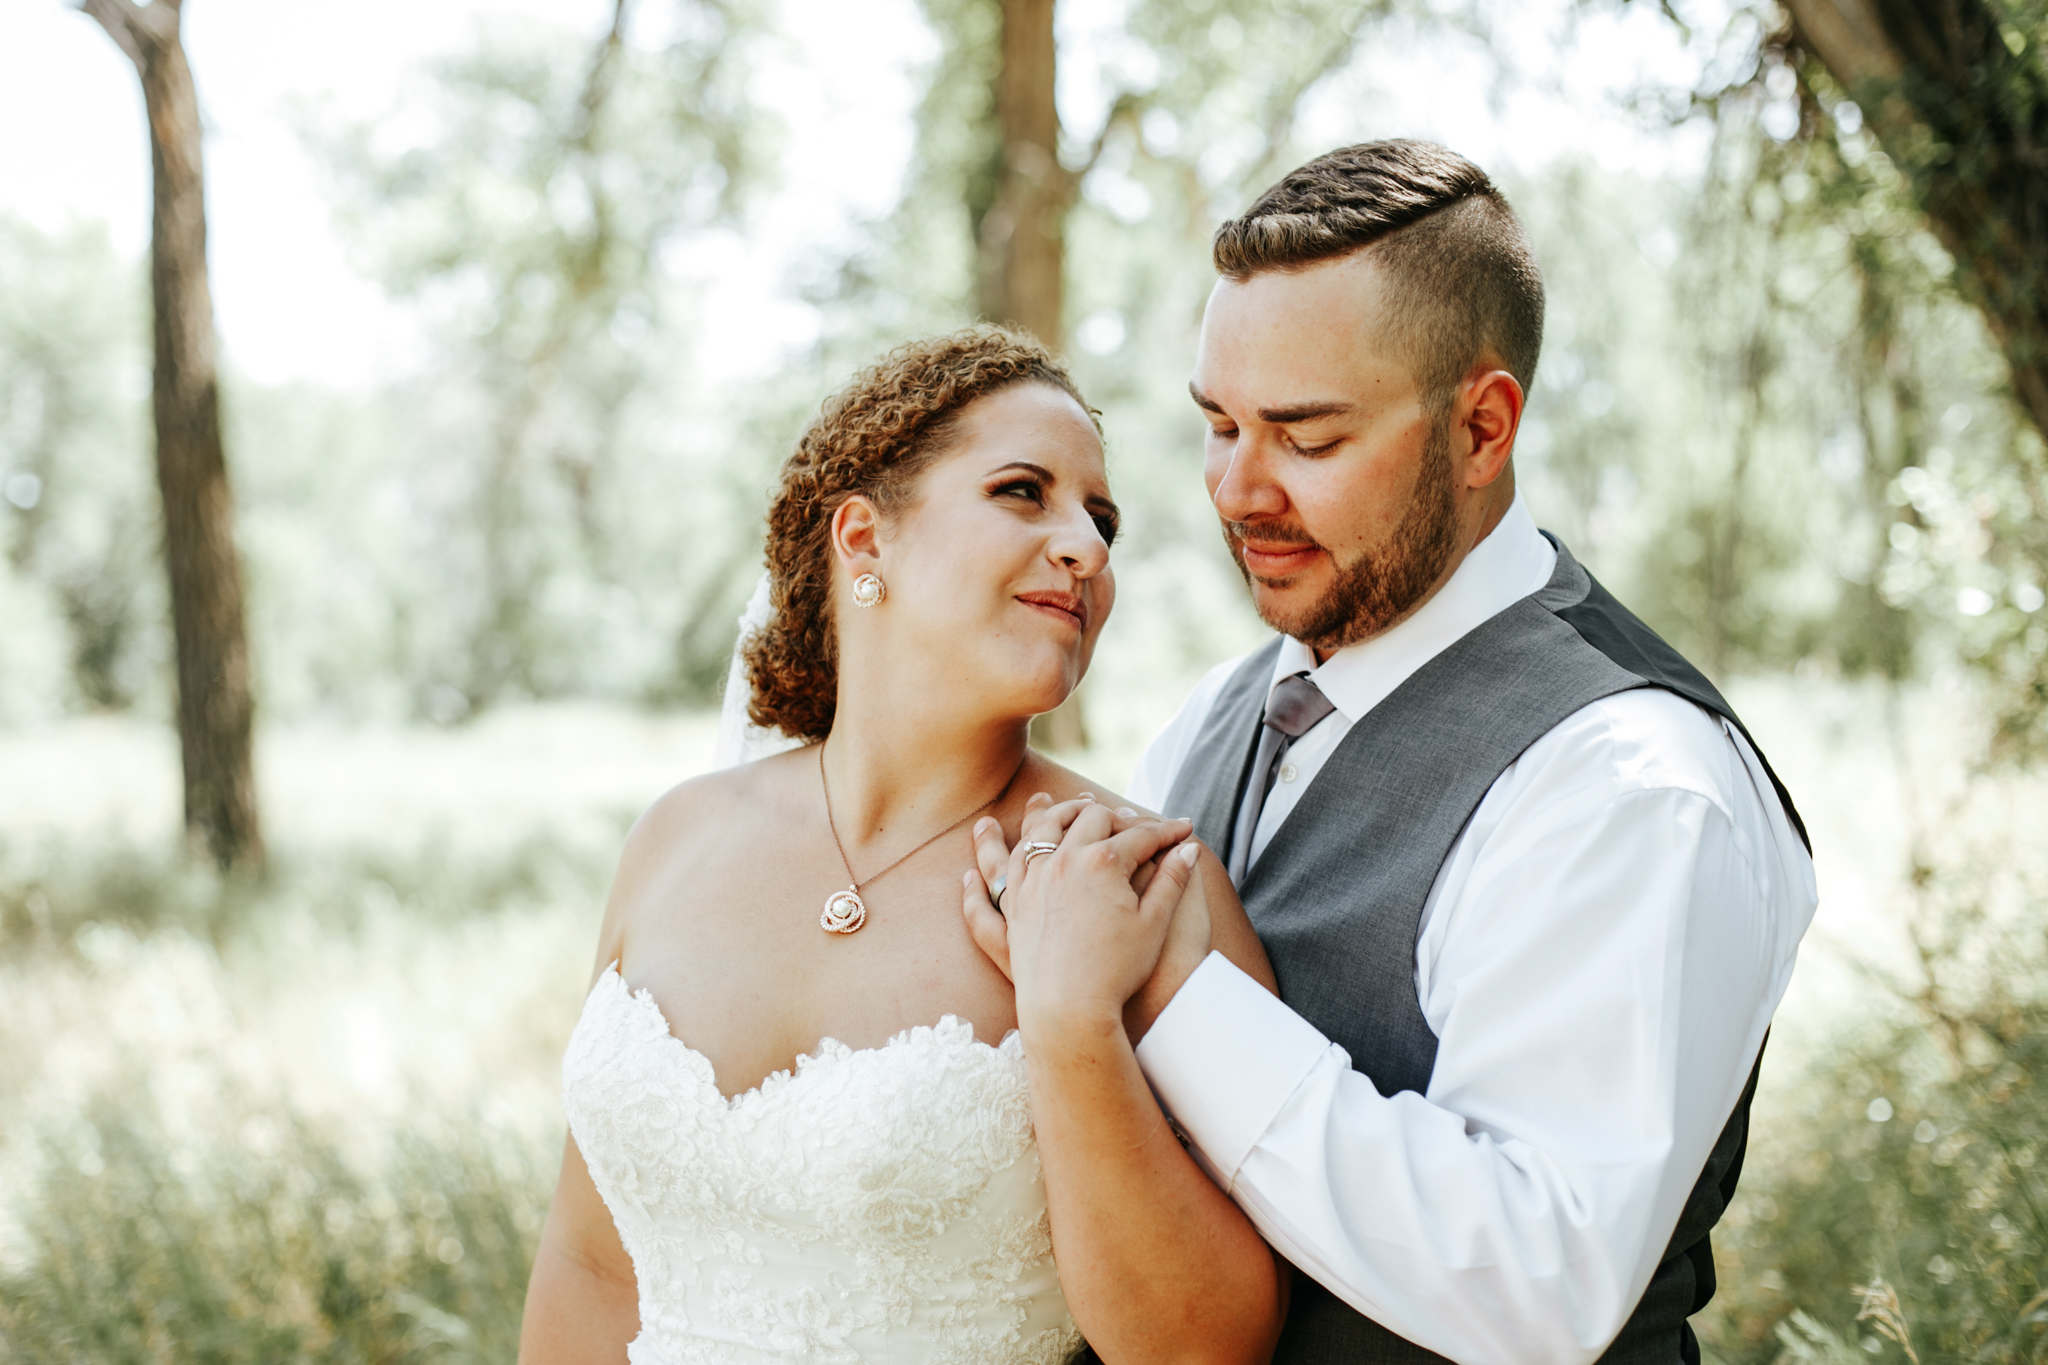 lethbridge-wedding-photographer-love-and-be-loved-photography-trent-danielle-galt-reception-picture-image-photo-117.jpg